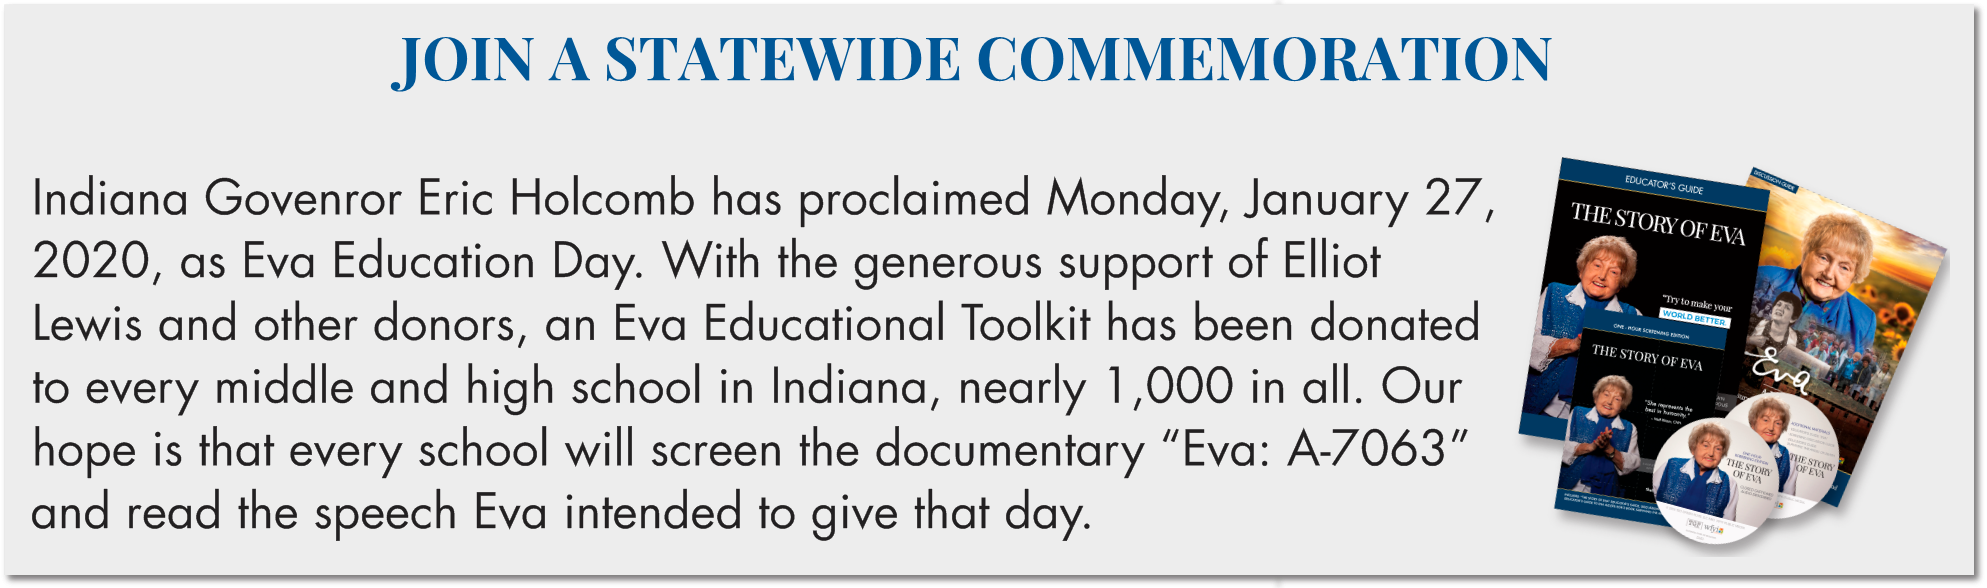 "JOIN A STATEWIDE COMMEMORATION  Indiana Govenror Eric Holcomb has proclaimed Monday, January 27, 2020, as Eva Education Day. With the generous support of Elliot Lewis and other donors, an Eva Educational Toolkit has been donated to every middle and high school in Indiana, nearly 1,000 in all. Our hope is that every school will screen the documentary ""Eva: A-7063"" and read the speech Eva intended to give that day."